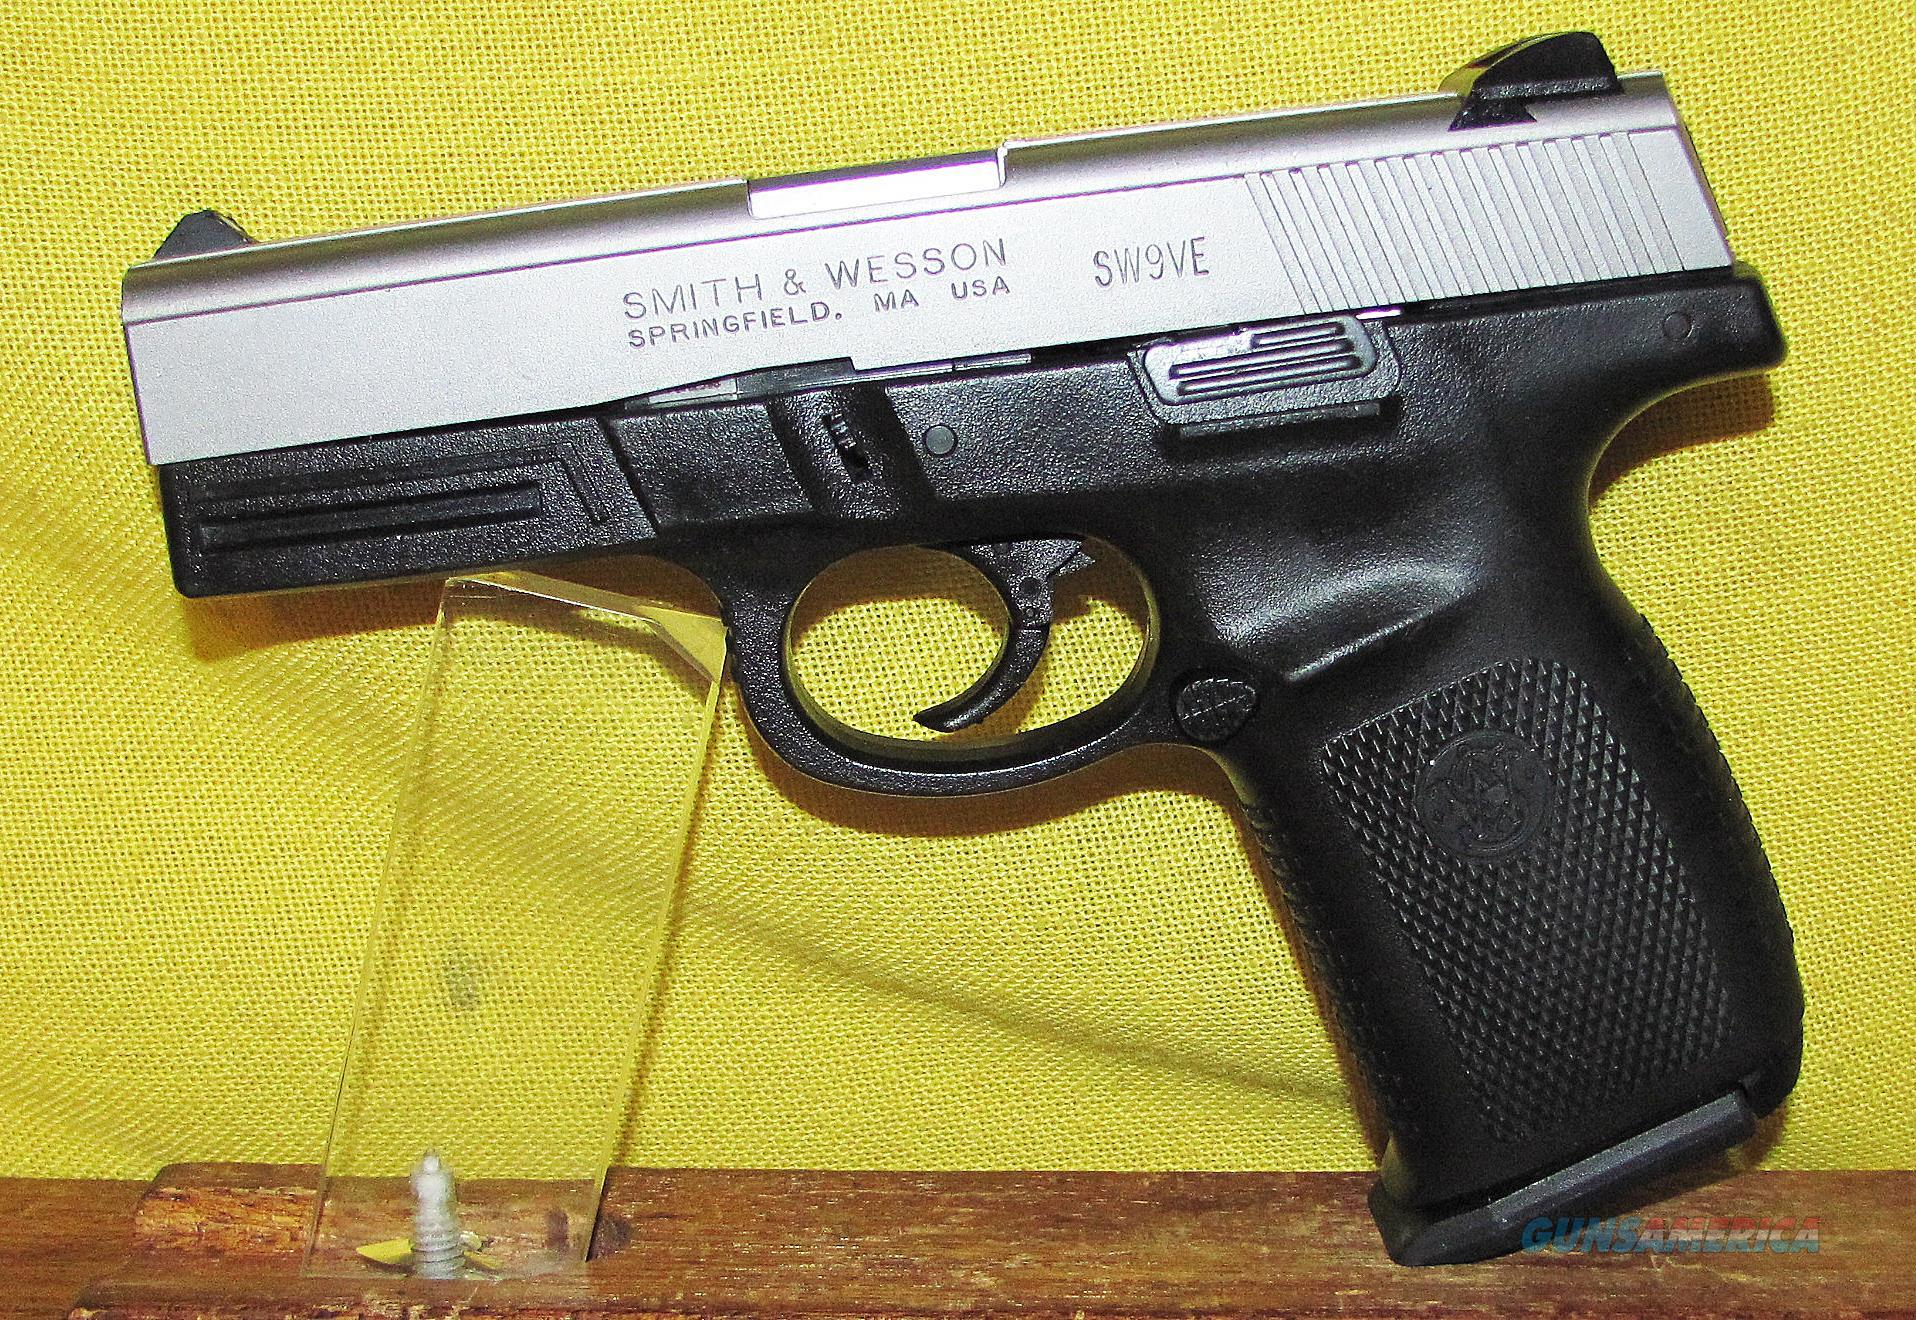 S&W SW9VE  Guns > Pistols > Smith & Wesson Pistols - Autos > Polymer Frame